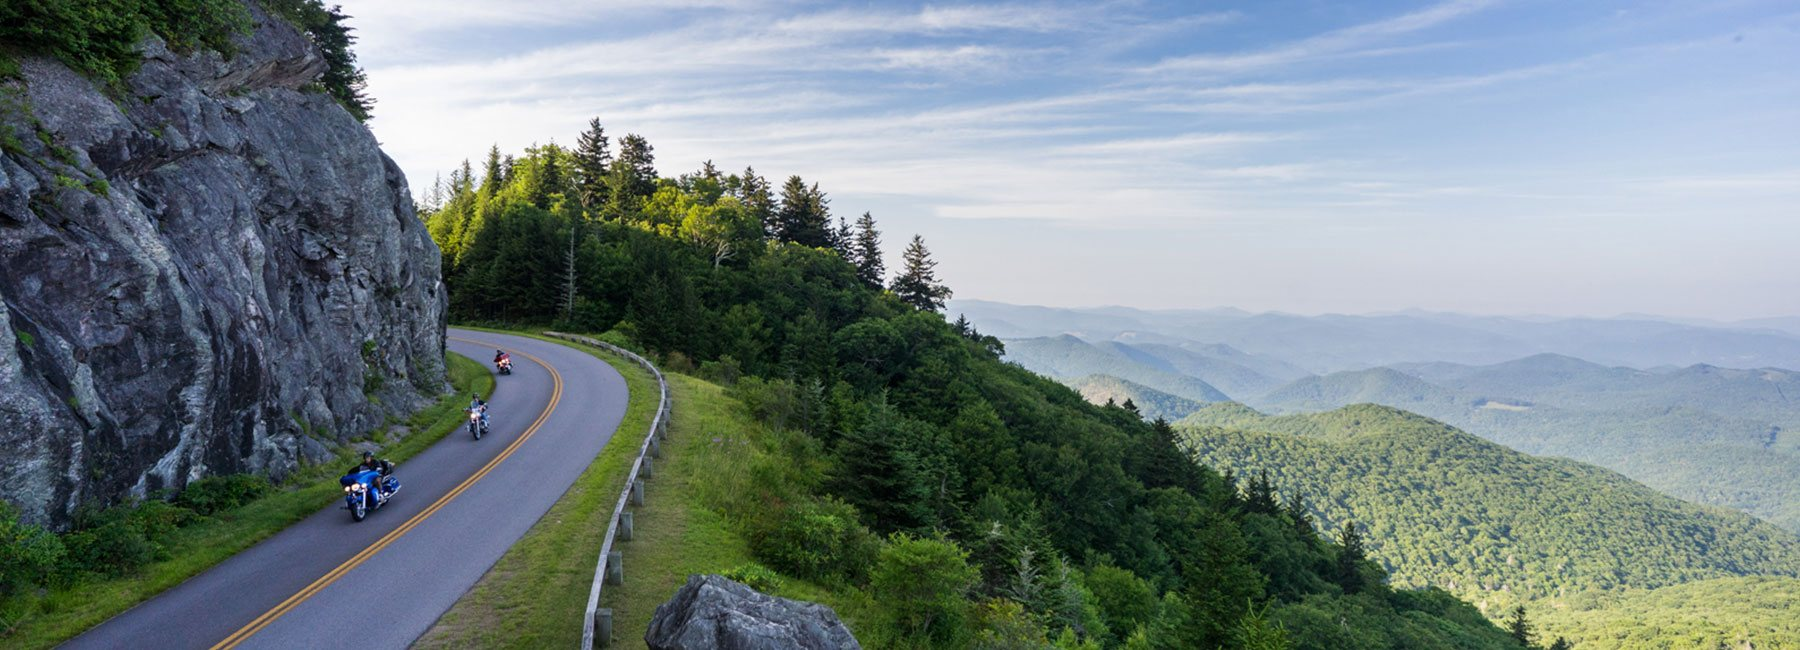 Experience the Blue Ridge Parkway | Blue Ridge Parkway Map